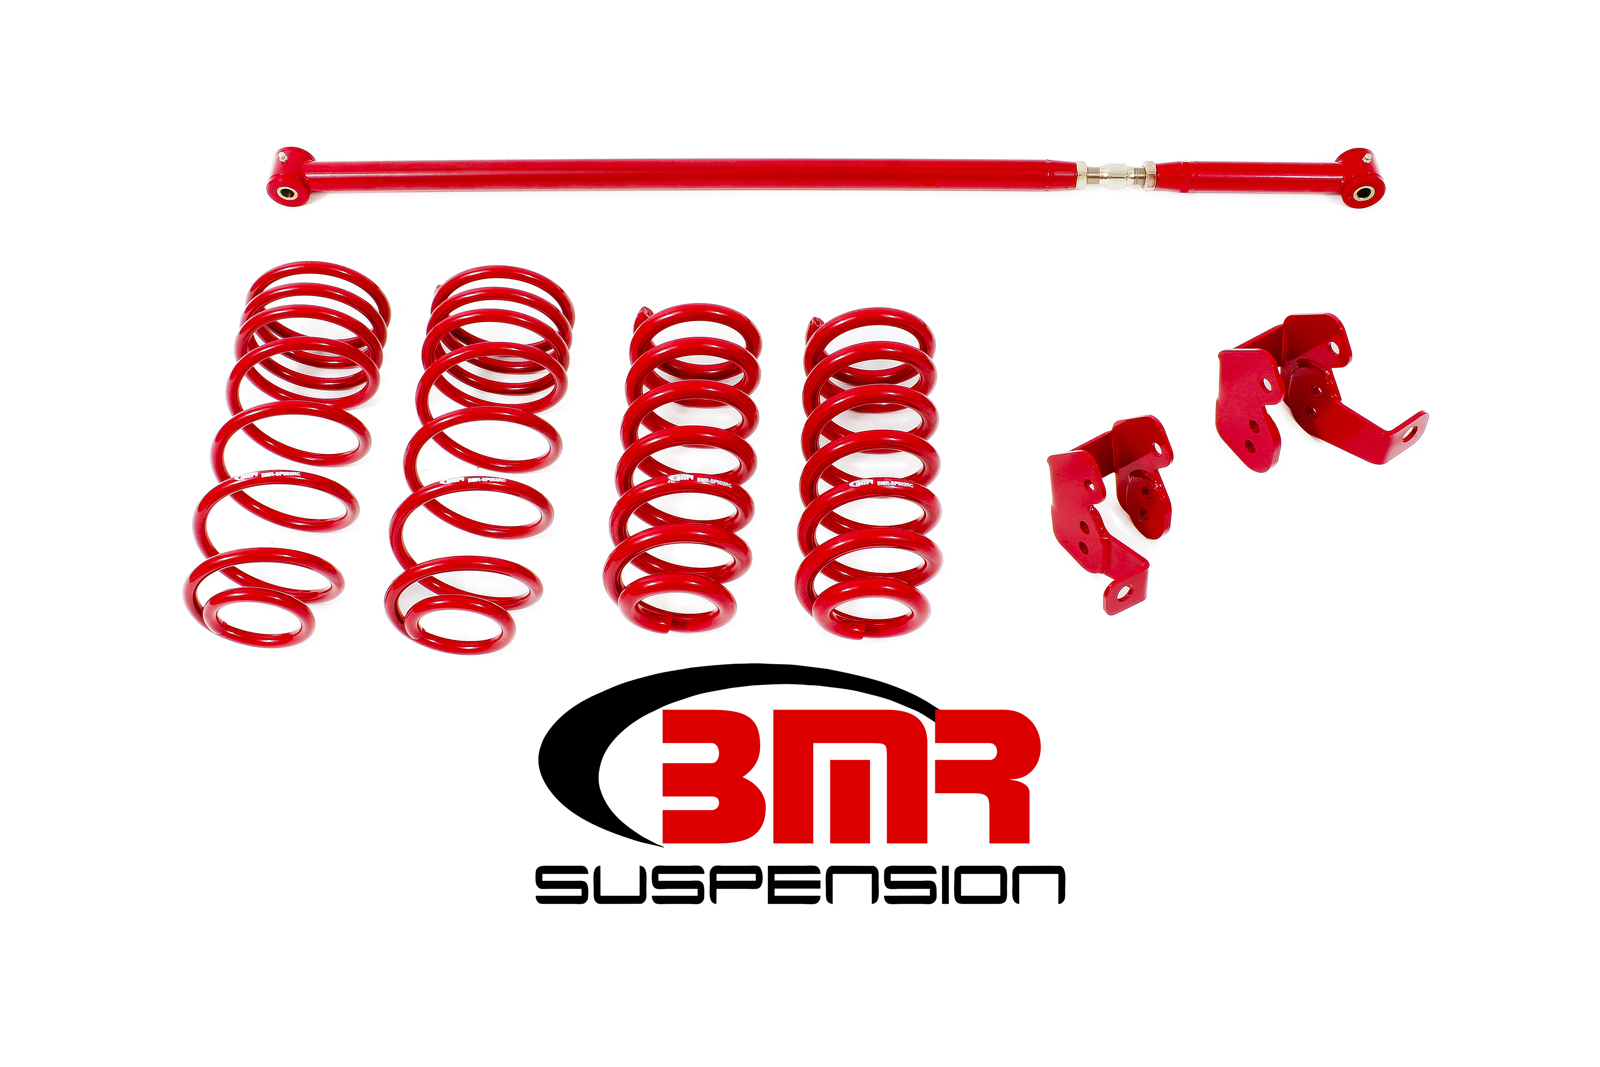 LSP003-1.jpg - 93-02 Fbody BMR Lowering Package